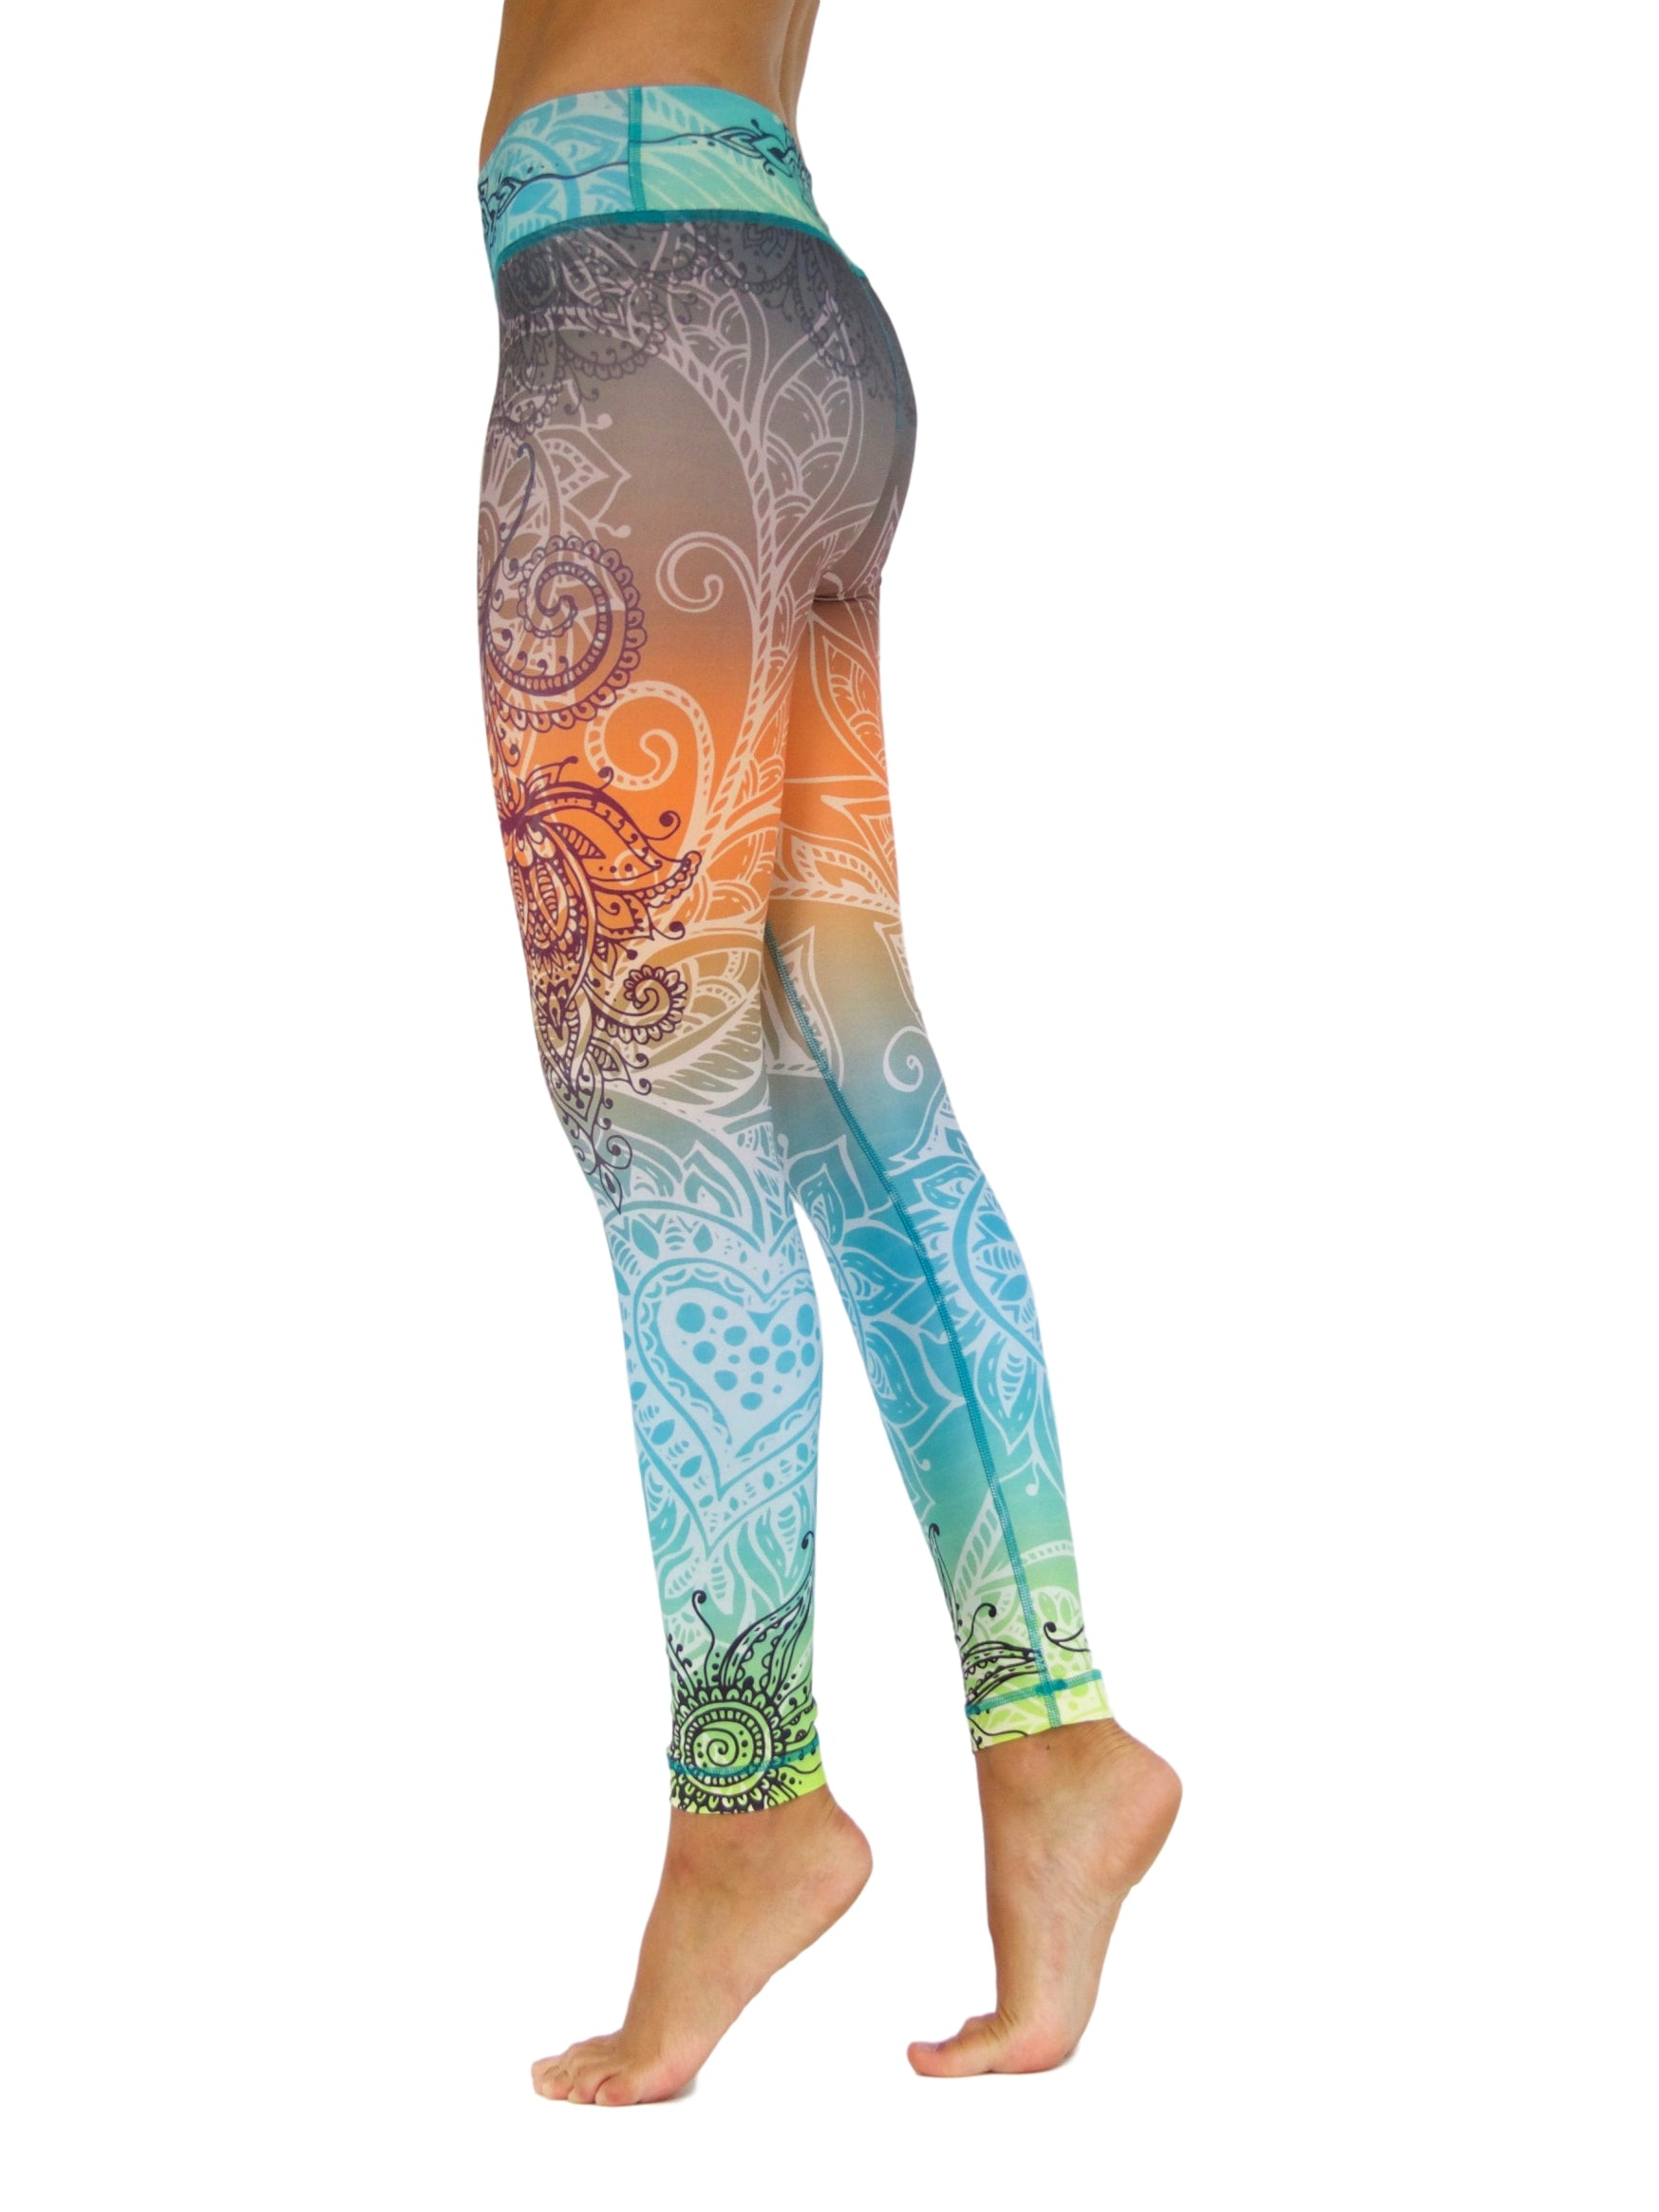 Summer Love by Niyama - High Quality, Yoga Legging for Movement Artists.